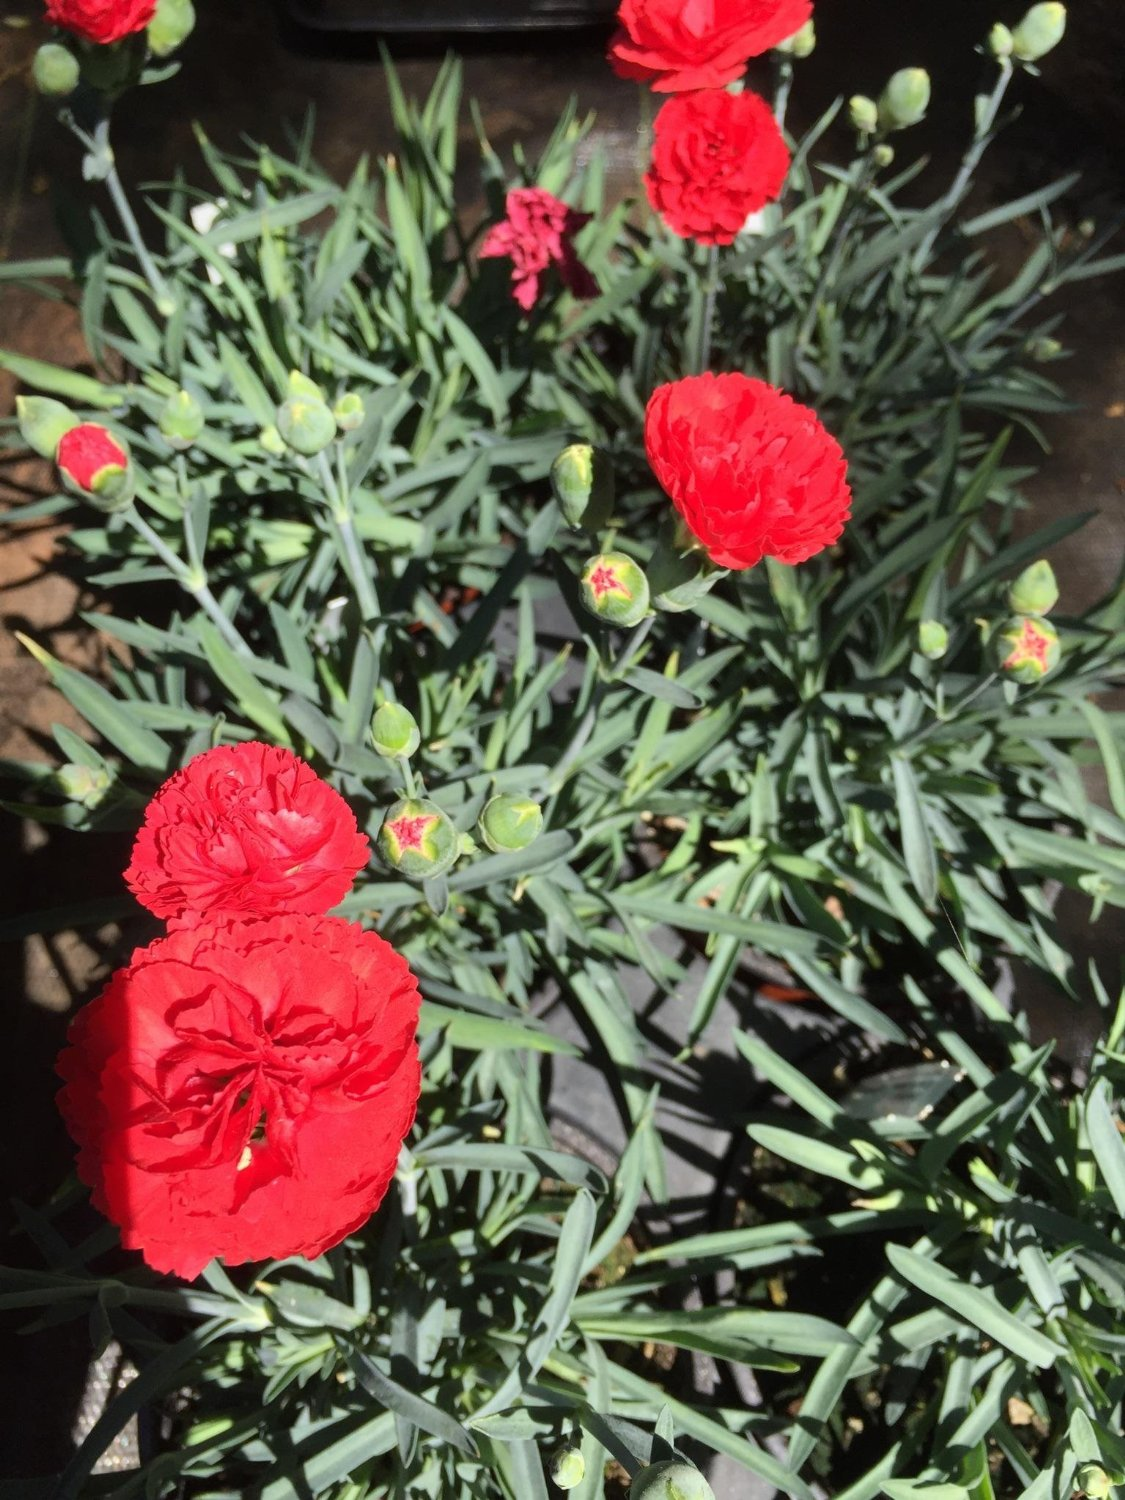 "(5"") Dianthus 'Chili' (Groundcover) - Gorgeous Dark Coral Double Blooms on Compact Blue Green Foliage. Fragrant Blooms From Spring to Fall. Easy to Grow."